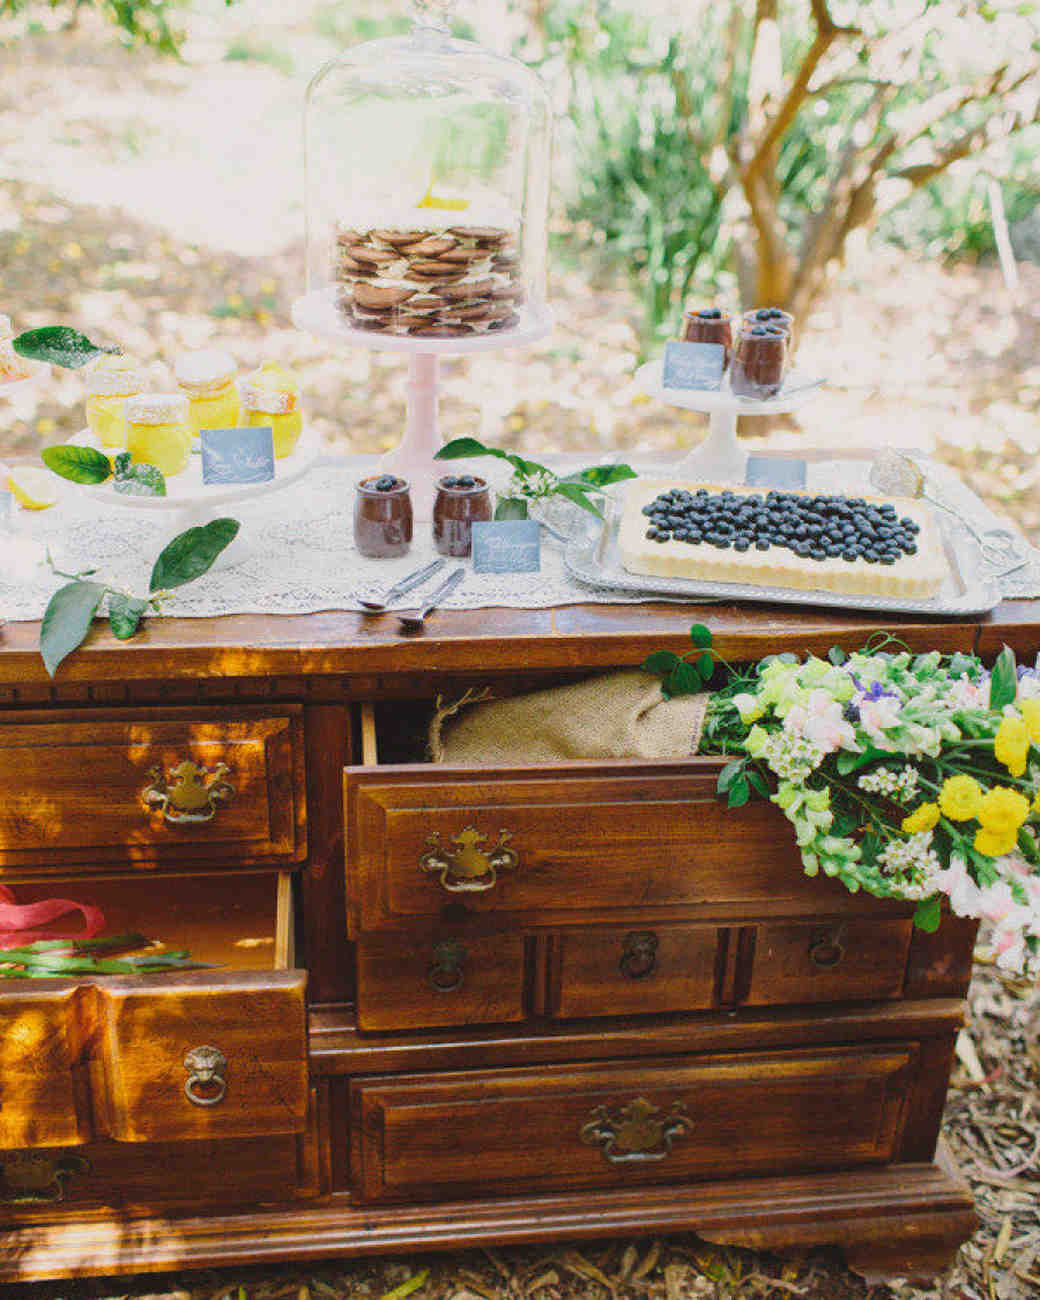 Wedding Dessert Table: 39 Amazing Dessert Tables From Real Weddings